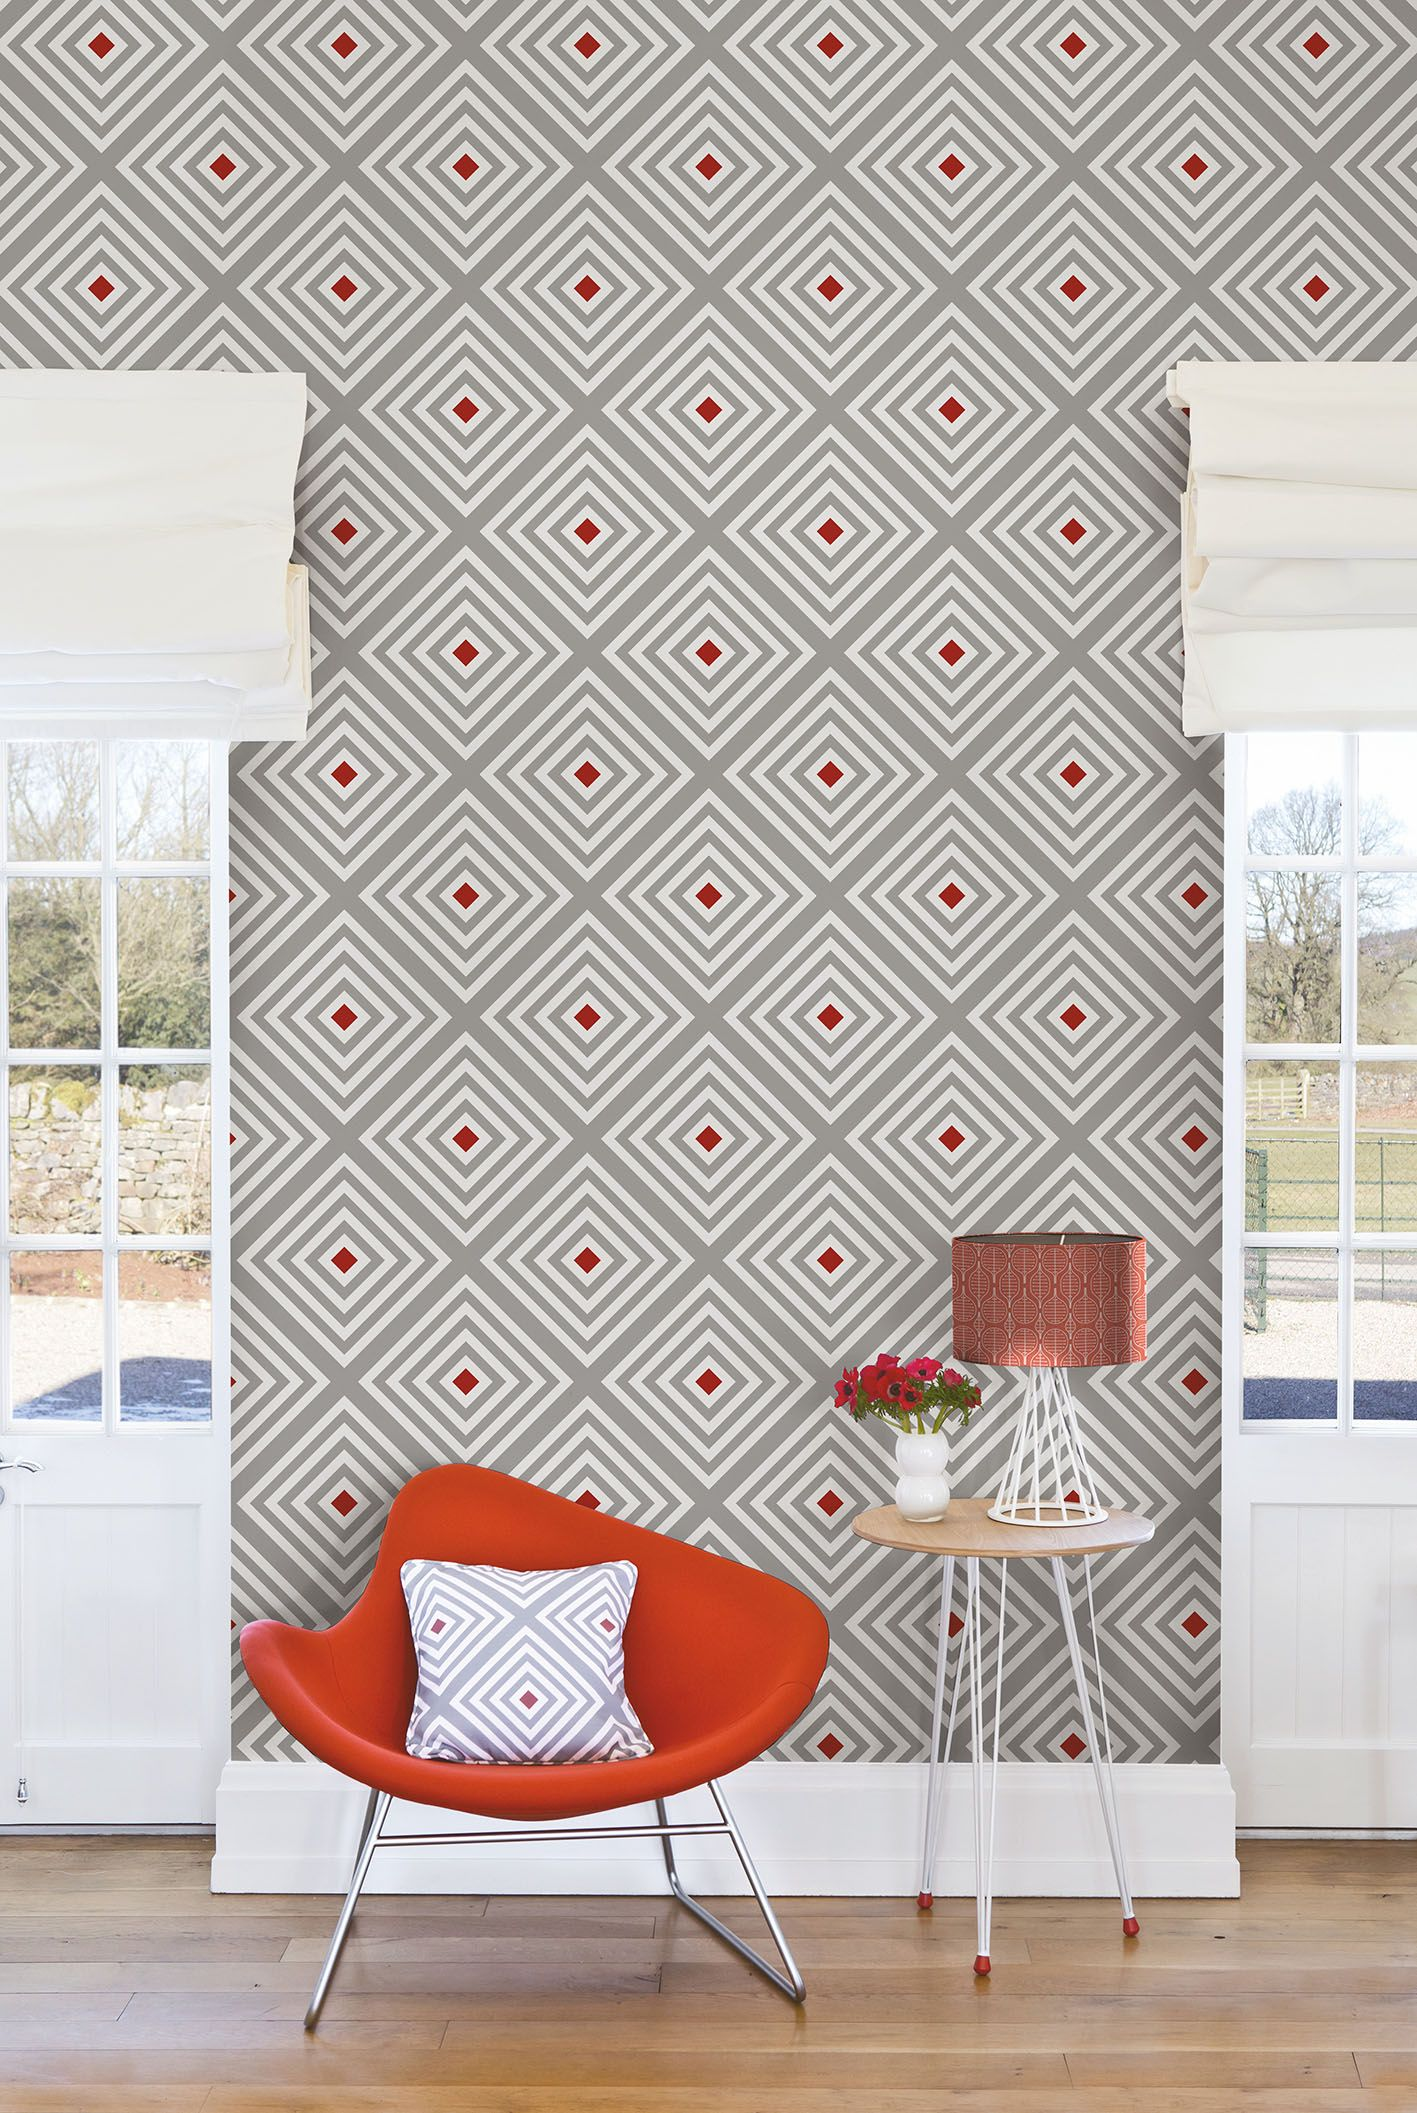 Diamond Wallpaper From Layla Faye Wwwlaylafayecom Retro Modern And Mid